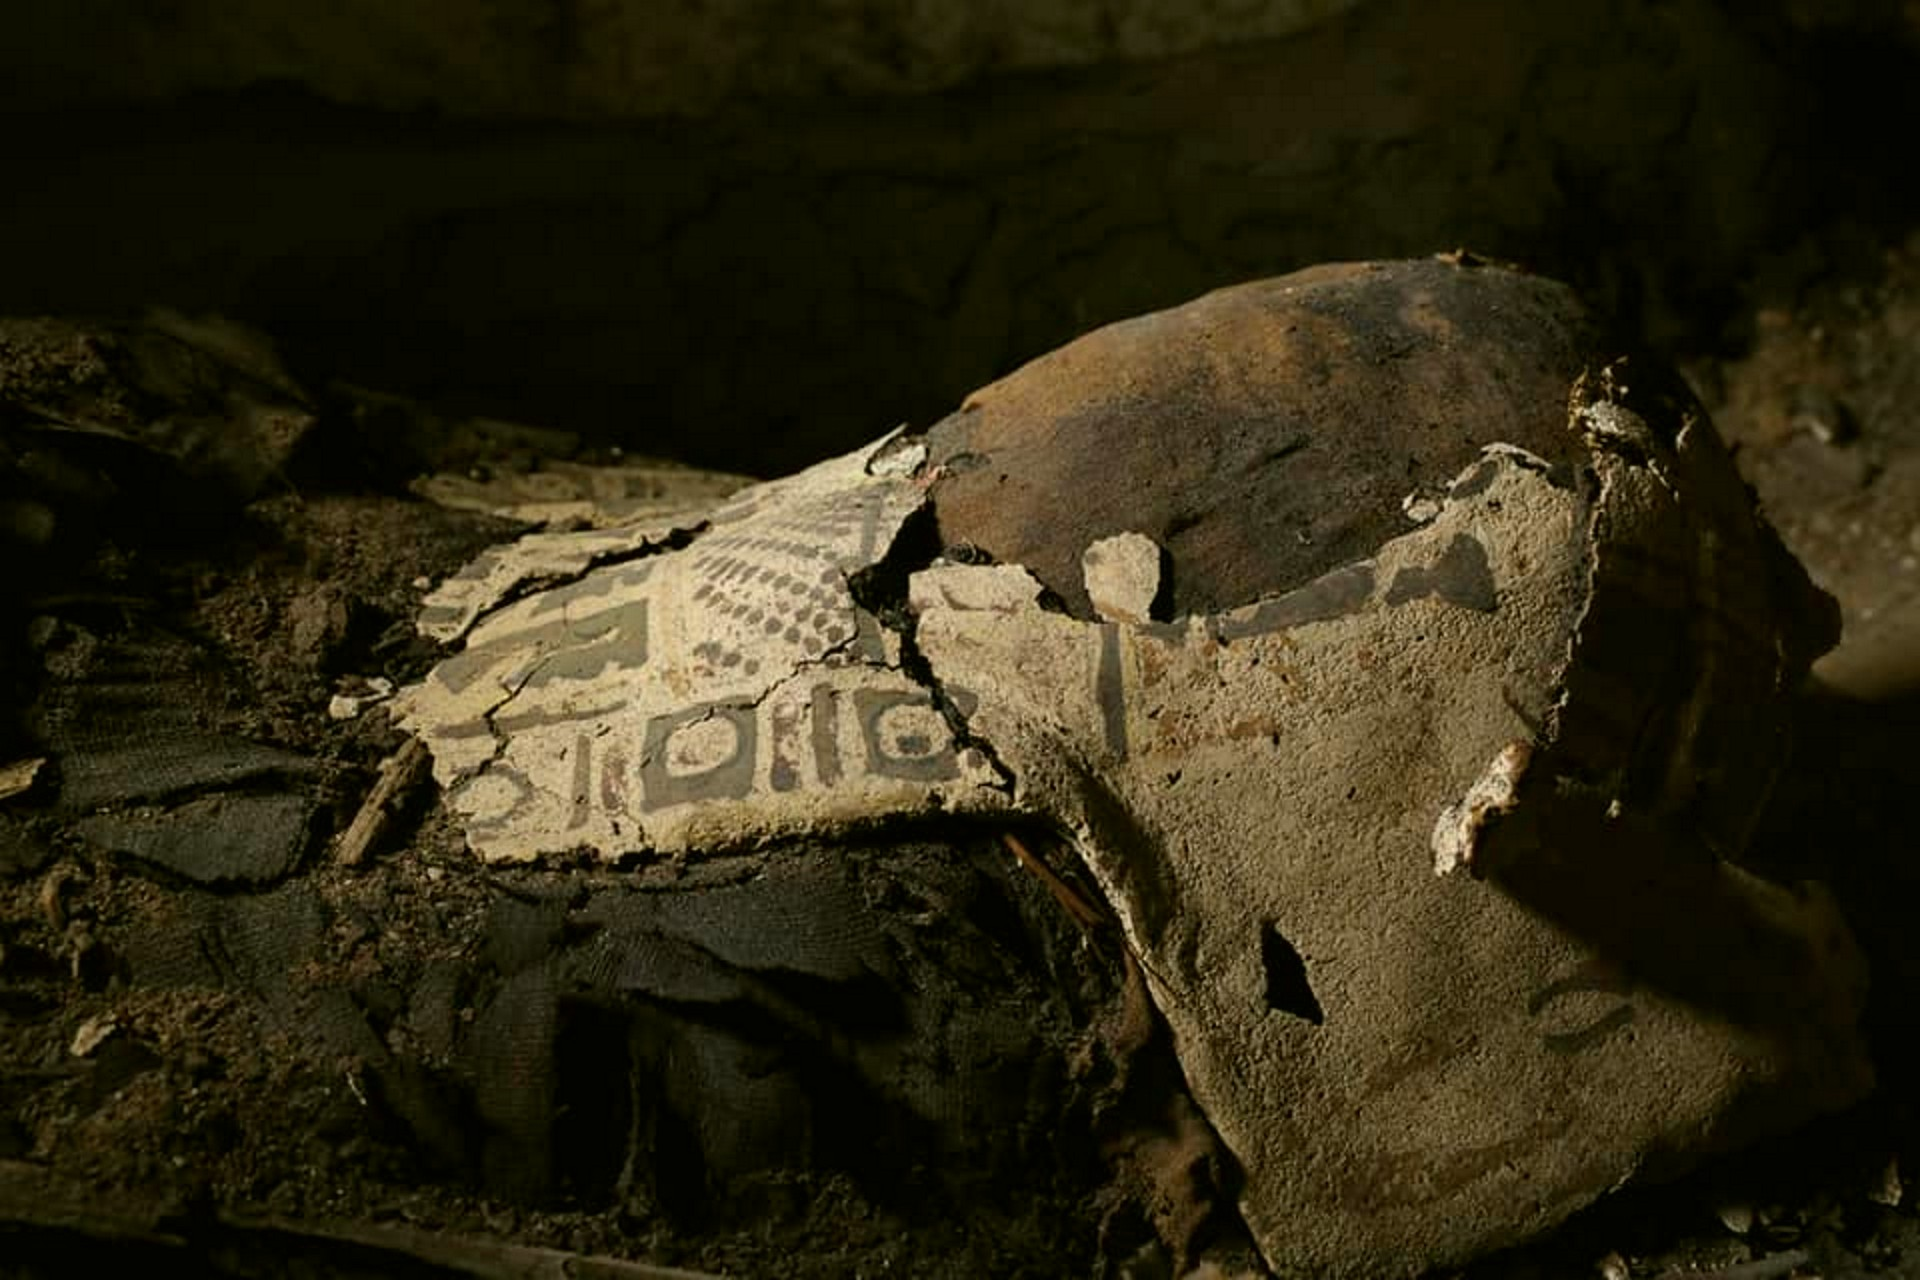 Le mummie trovate a Minya, nella necropoli di Tuna el-Gebel (foto Facebook Ministry of Antiquities)